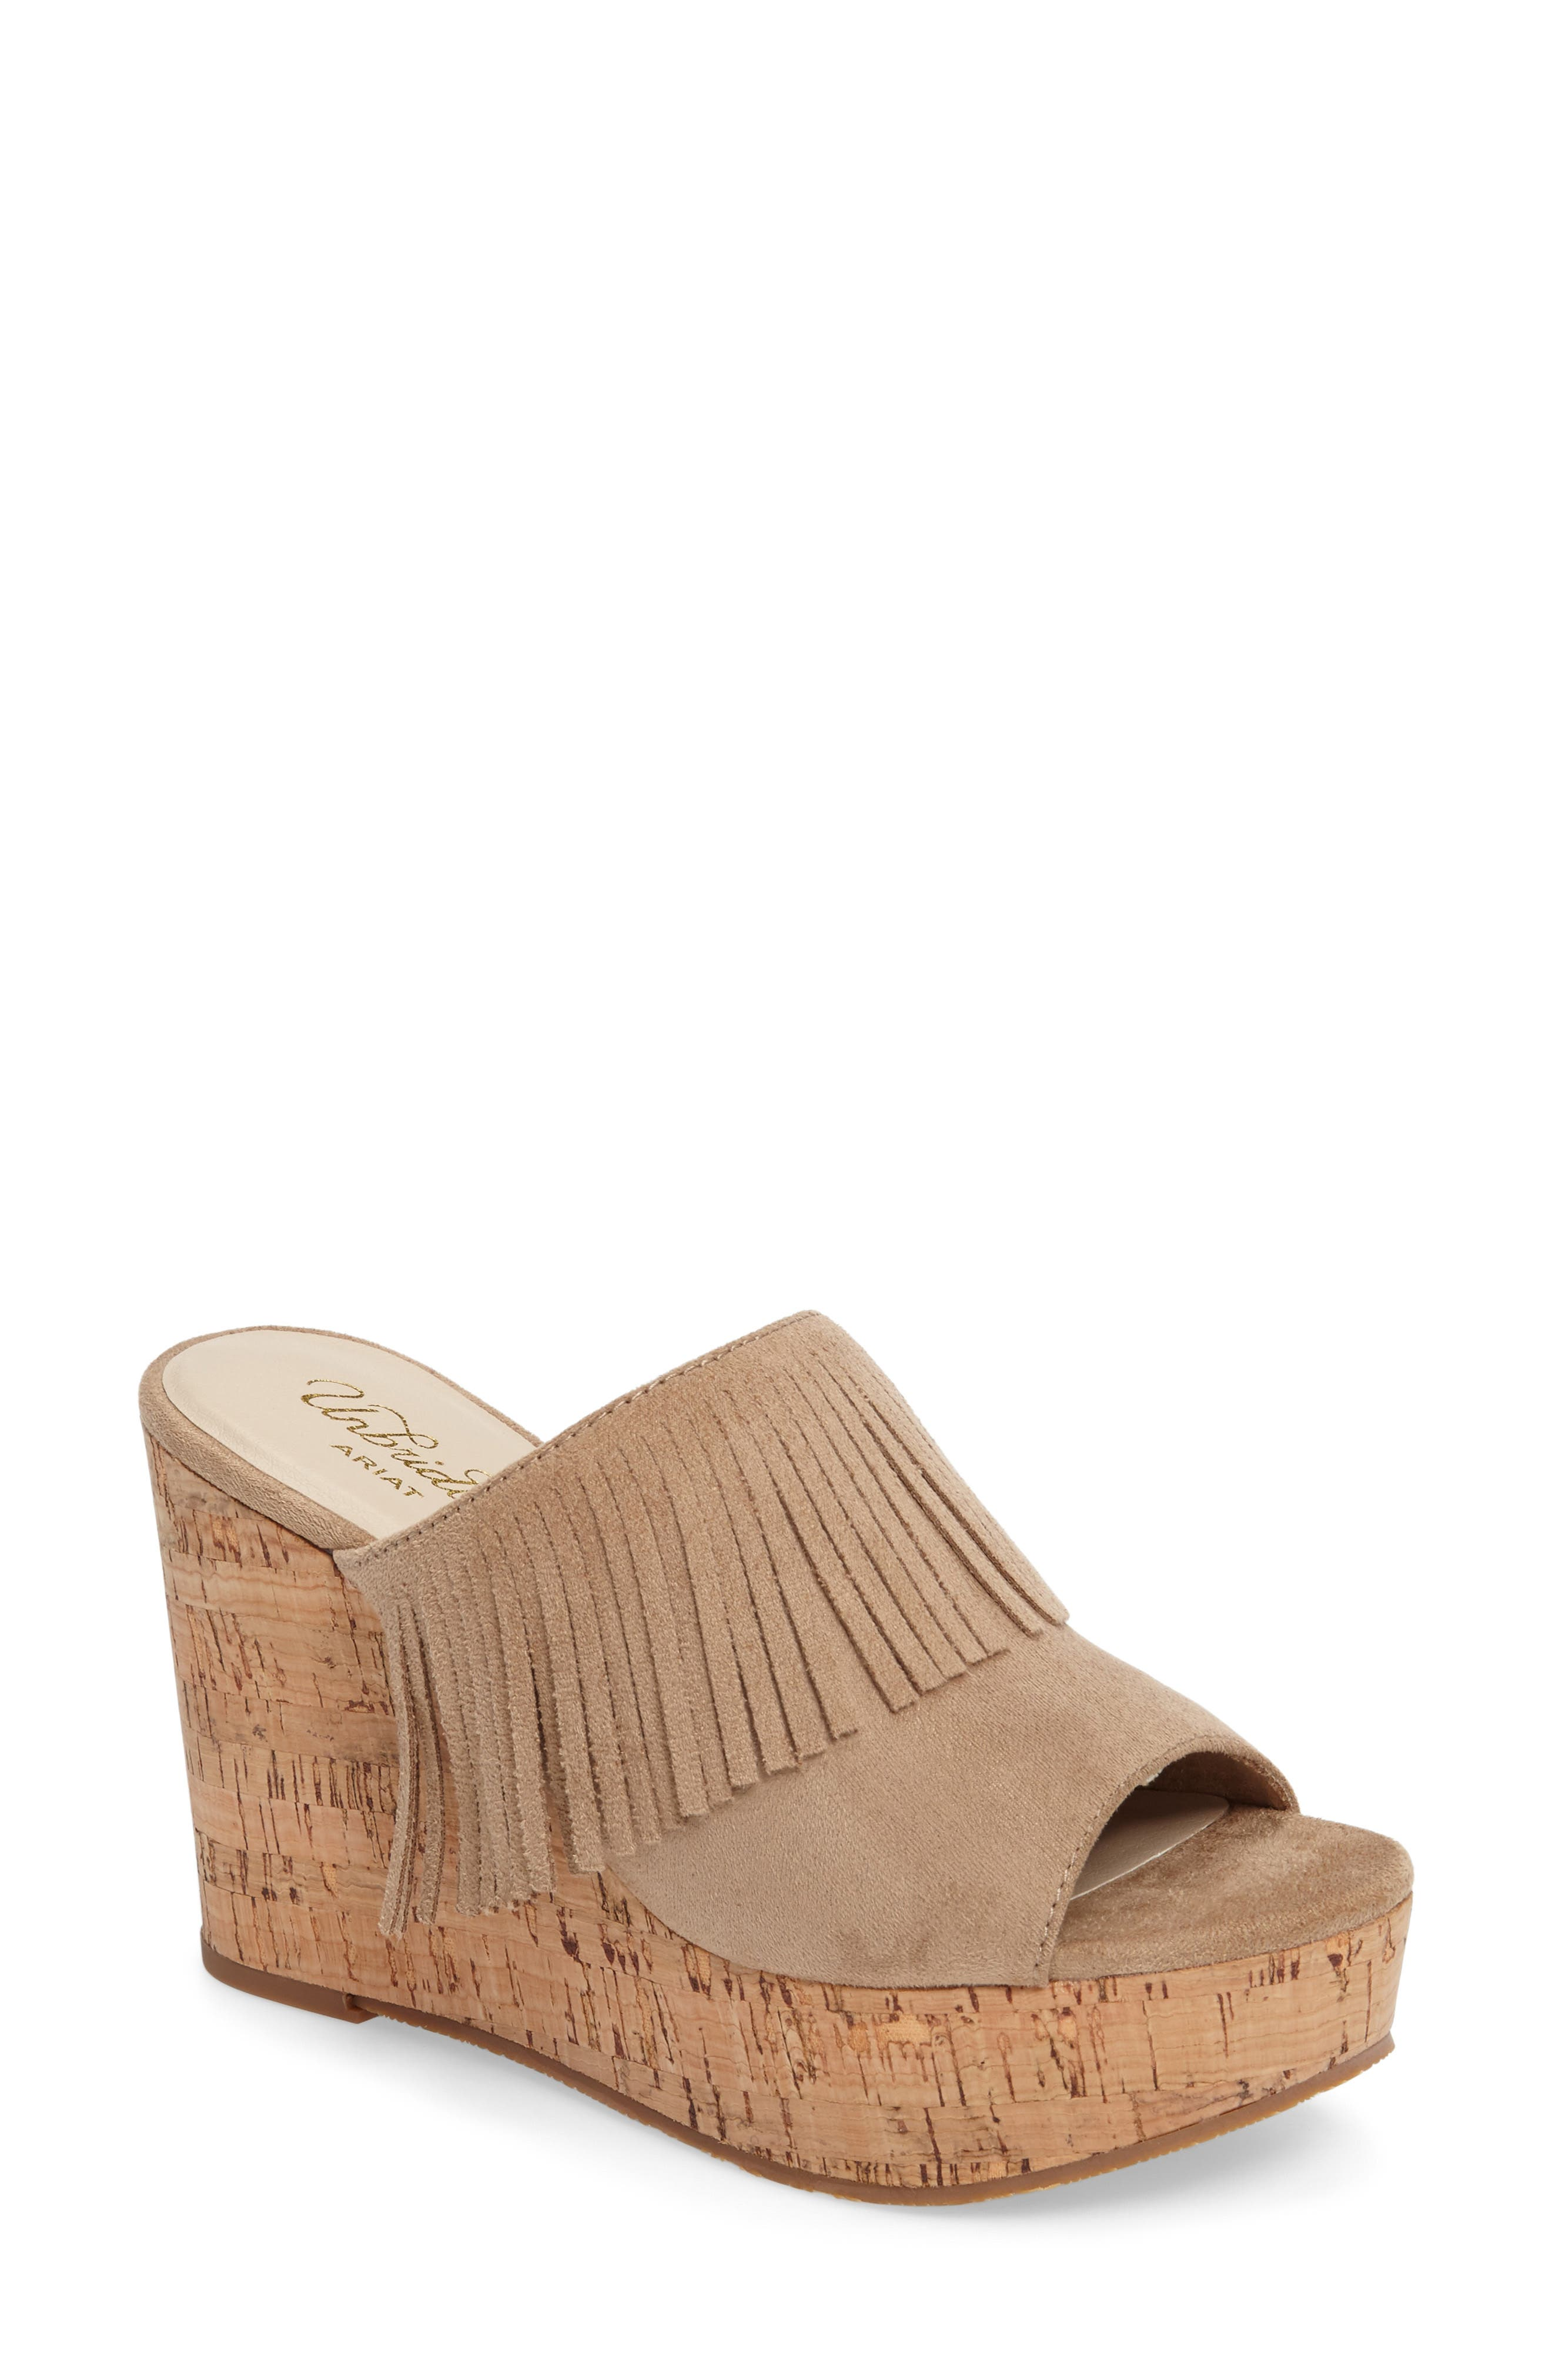 Unbridled Leigh Fringe Mule,                             Main thumbnail 1, color,                             Sand Fabric